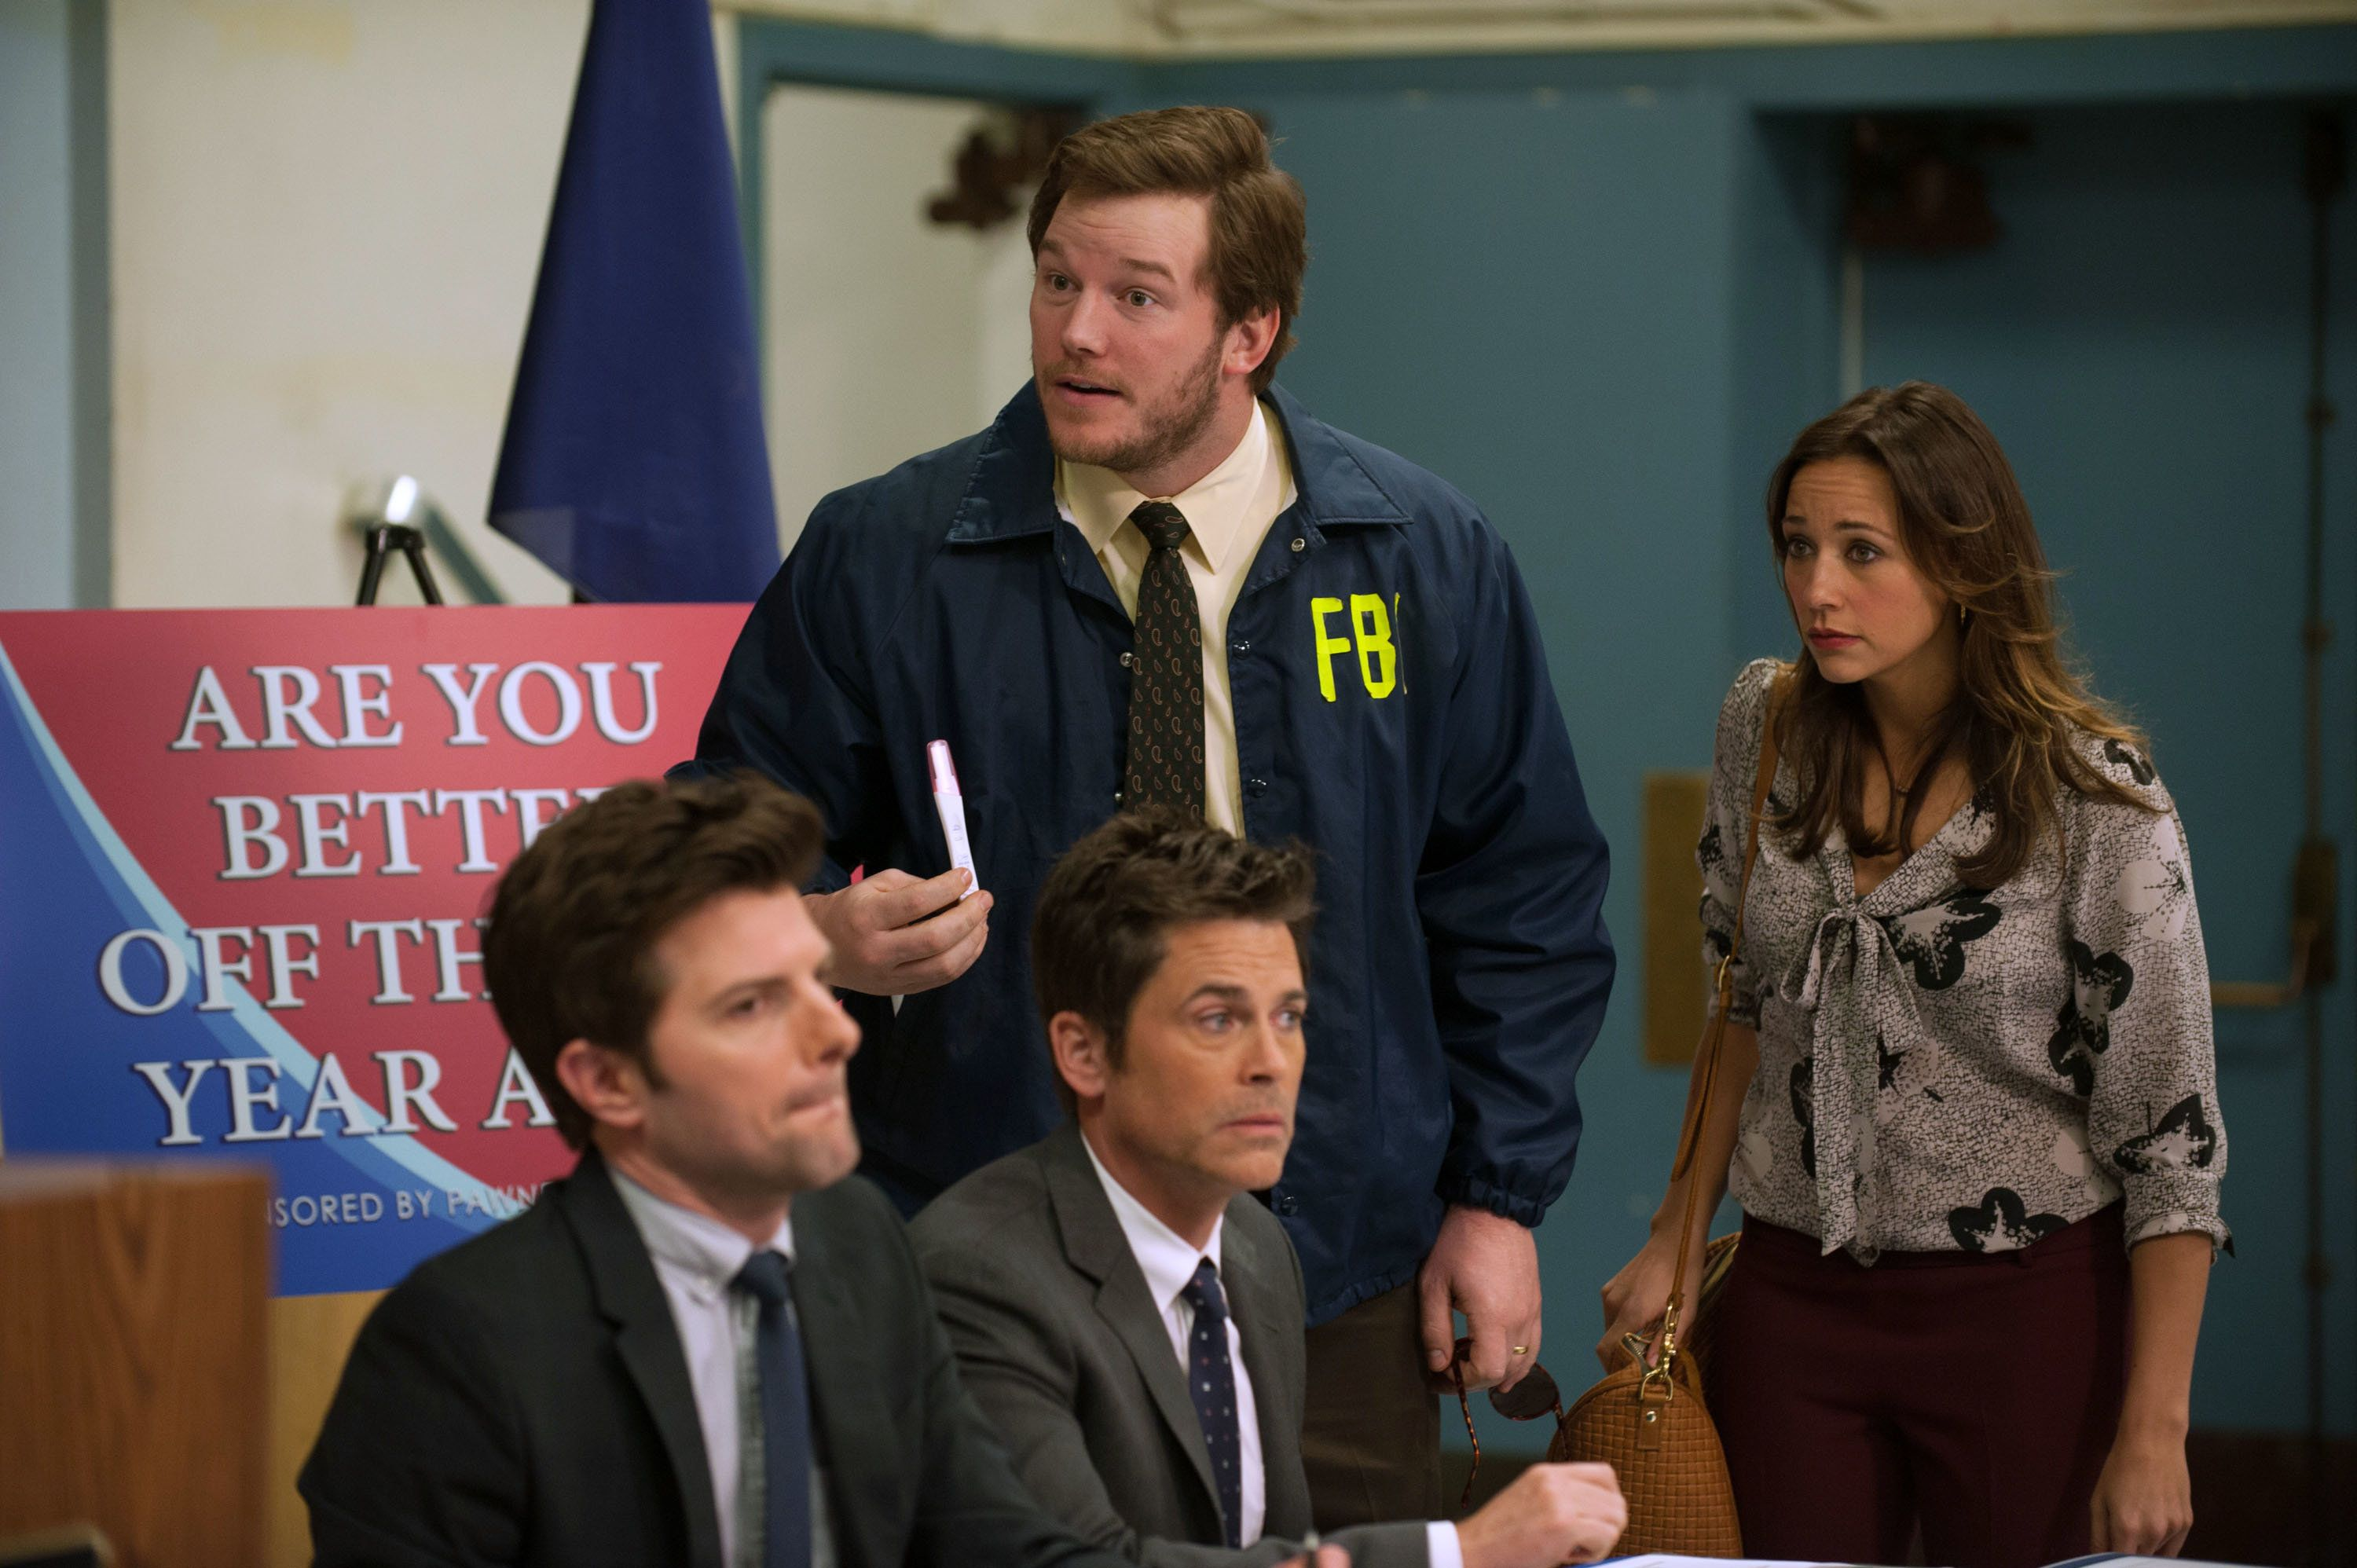 PARKS AND RECREATION -- 'Are You Better Off?' Episode 522 -- Pictured: (l-r) Adam Scott as Ben Wyatt, Rob Lowe as Chris Traeger, Chris Pratt as Andy, Rashida Jones as Ann Perkins -- (Photo by: Colleen Hayes/NBC/NBCU Photo Bank via Getty Images)